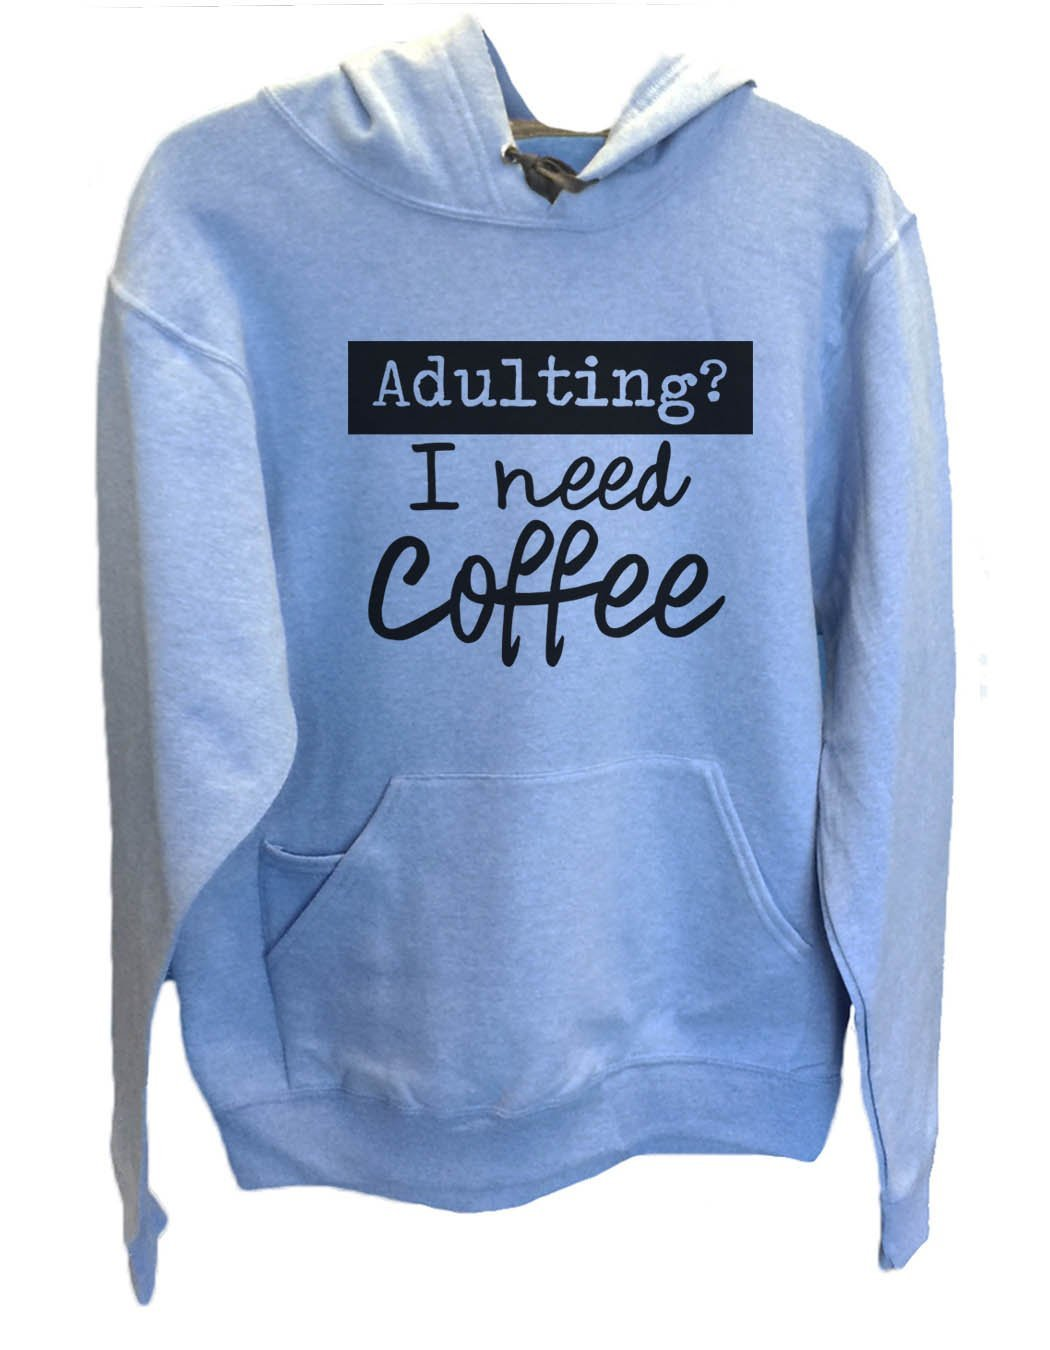 UNISEX HOODIE - Adulting? I Need Coffee - FUNNY MENS AND WOMENS HOODED SWEATSHIRTS - 2207 Funny Shirt Small / North Carolina Blue